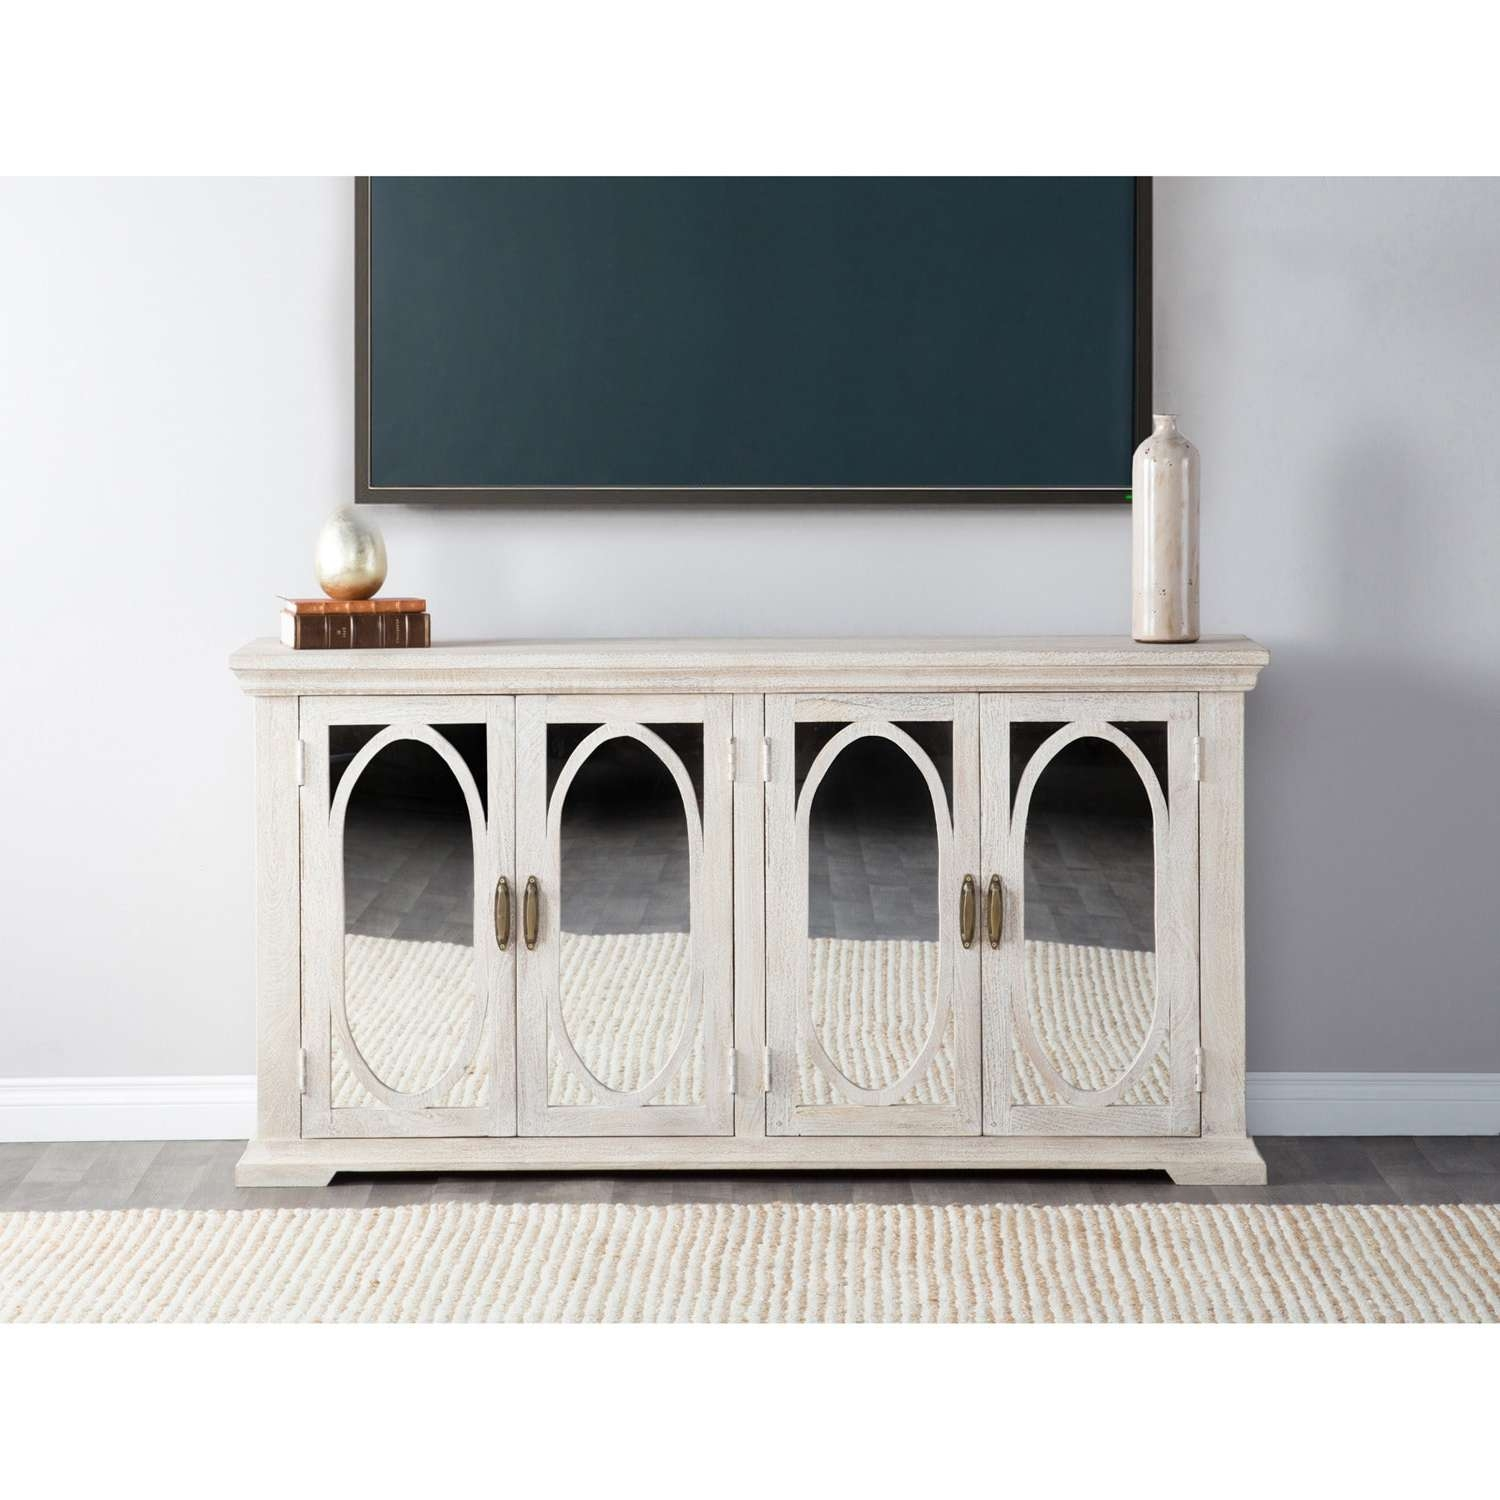 Manchester Wood Mirrored 70 Inch Sideboardkosas Home – Free Throughout 70 Inch Sideboards (View 9 of 20)